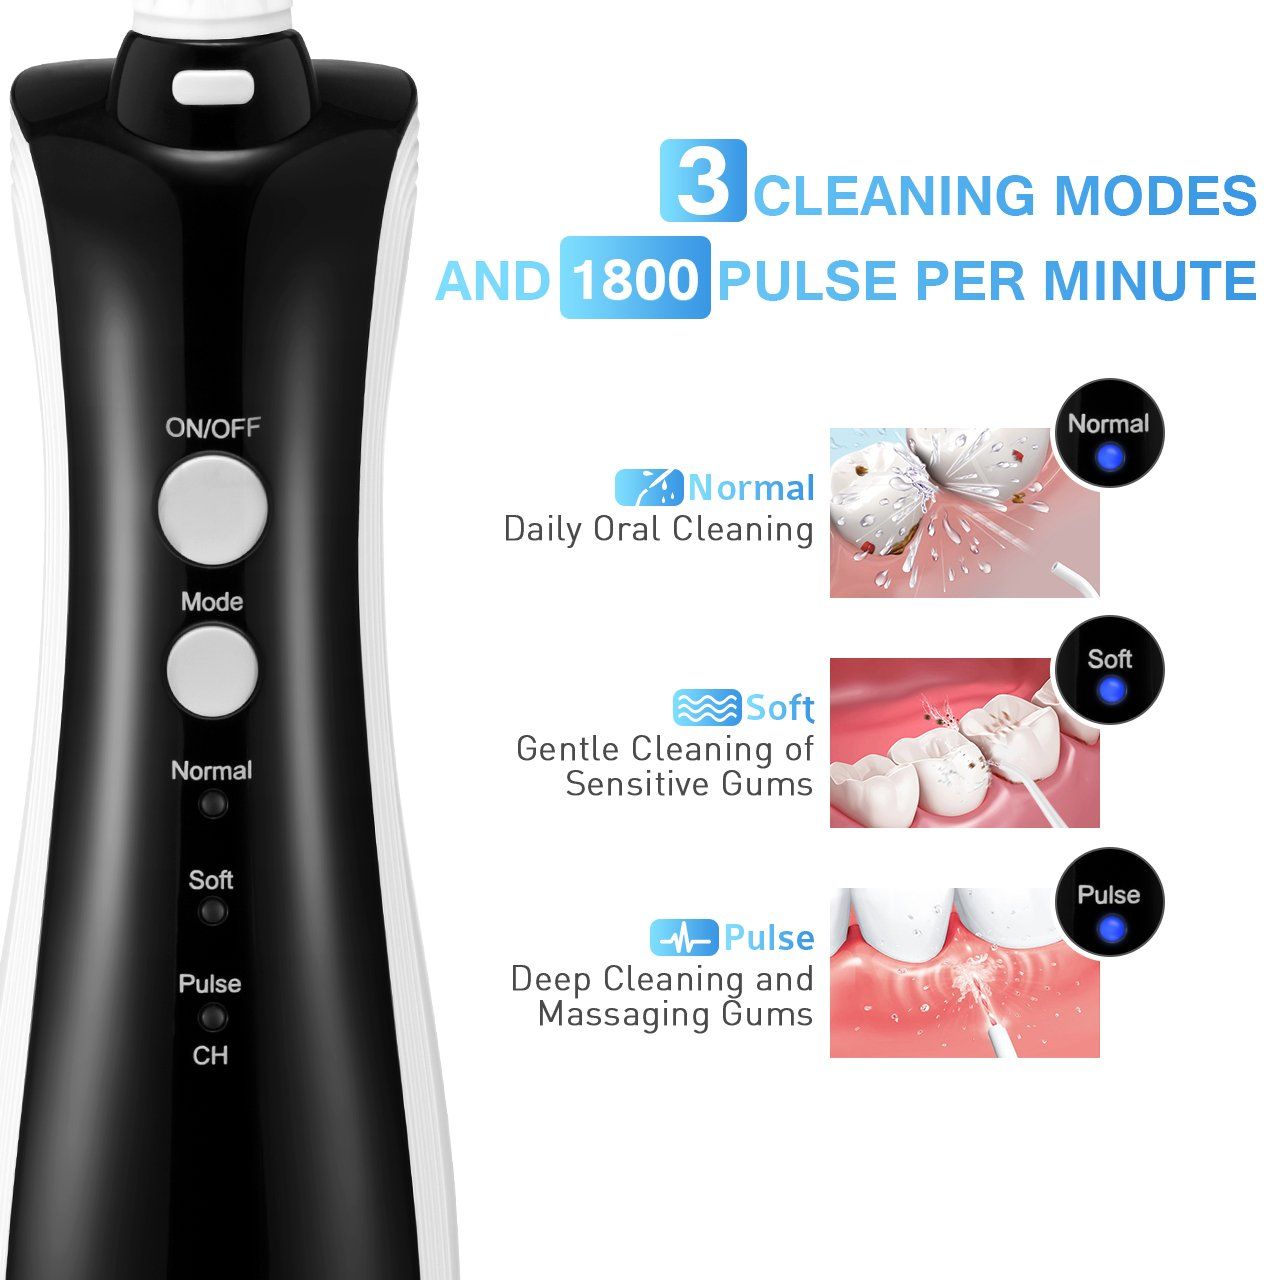 [UPGRADED] 330ML Cordless Water Flosser Teeth Cleaner, ELLESYE High Pulse Rechargeable Portable Oral Irrigator for Travel & Office Use, IPX7 Waterproof Dental Flosser for Shower with 2 Tips for Family by ELLESYE (Image #4)